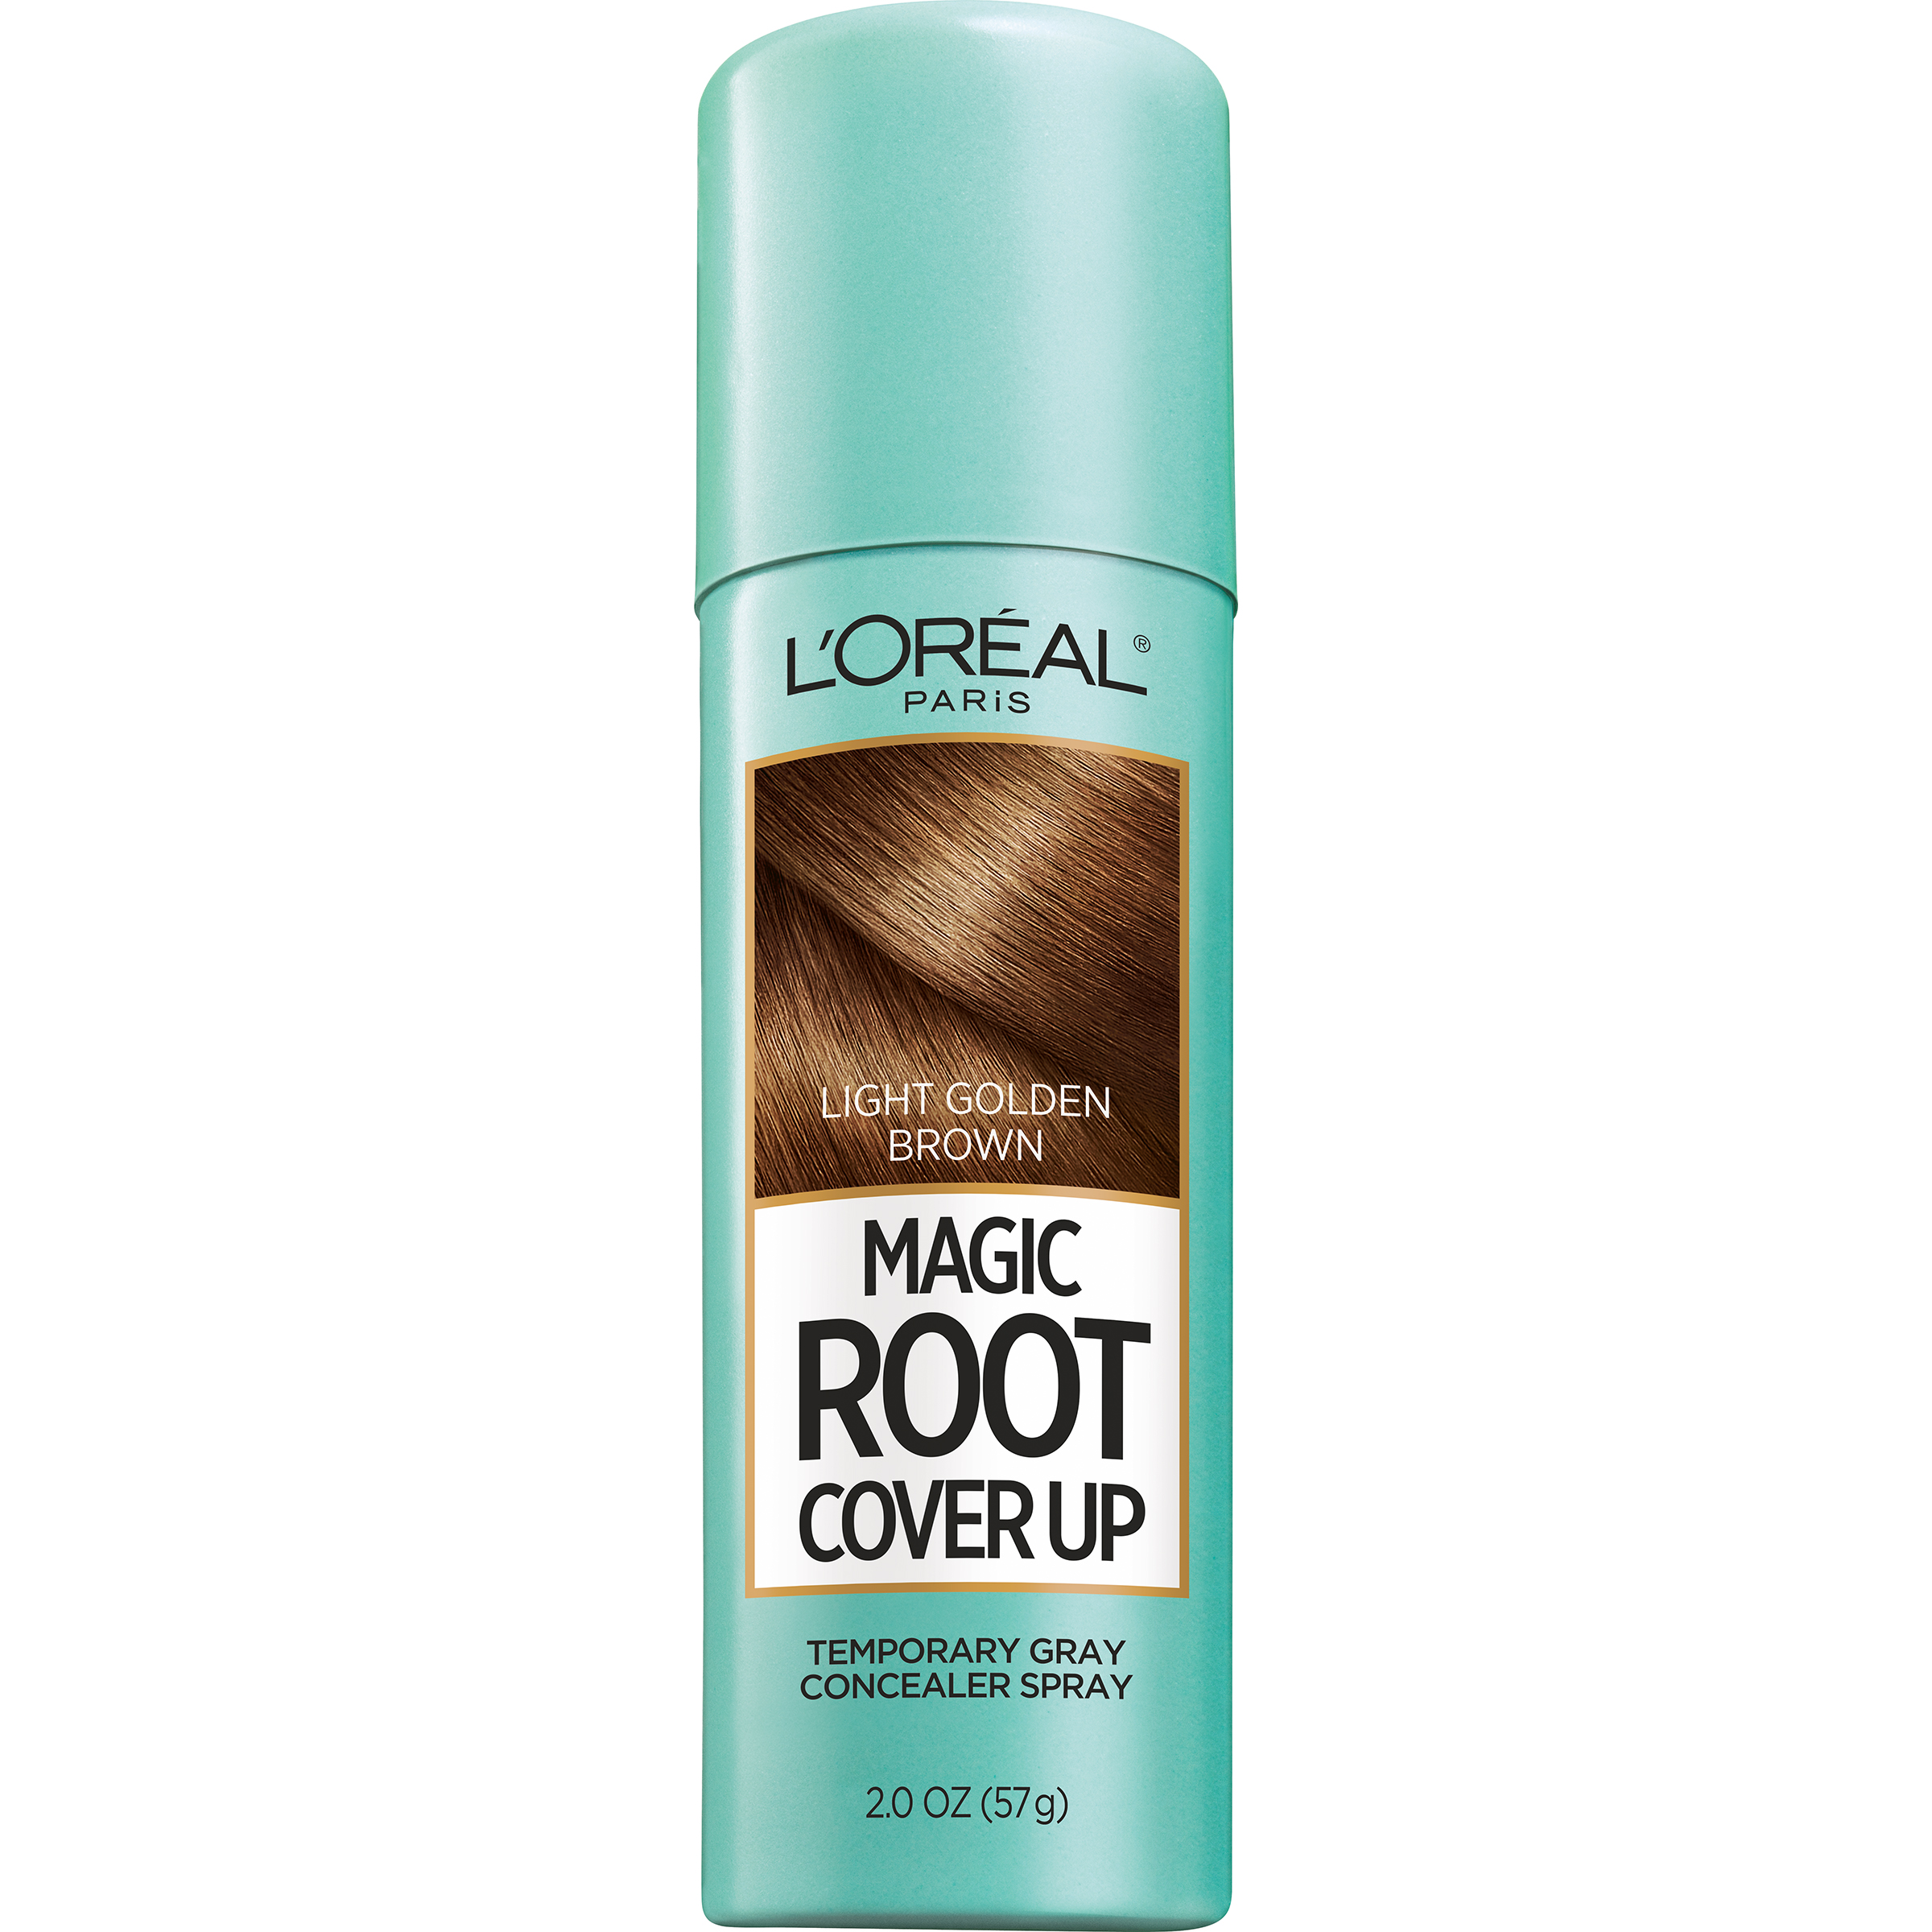 LOreal Paris Magic Root Cover Up Gray Concealer Hair Spray Light Golden Brown